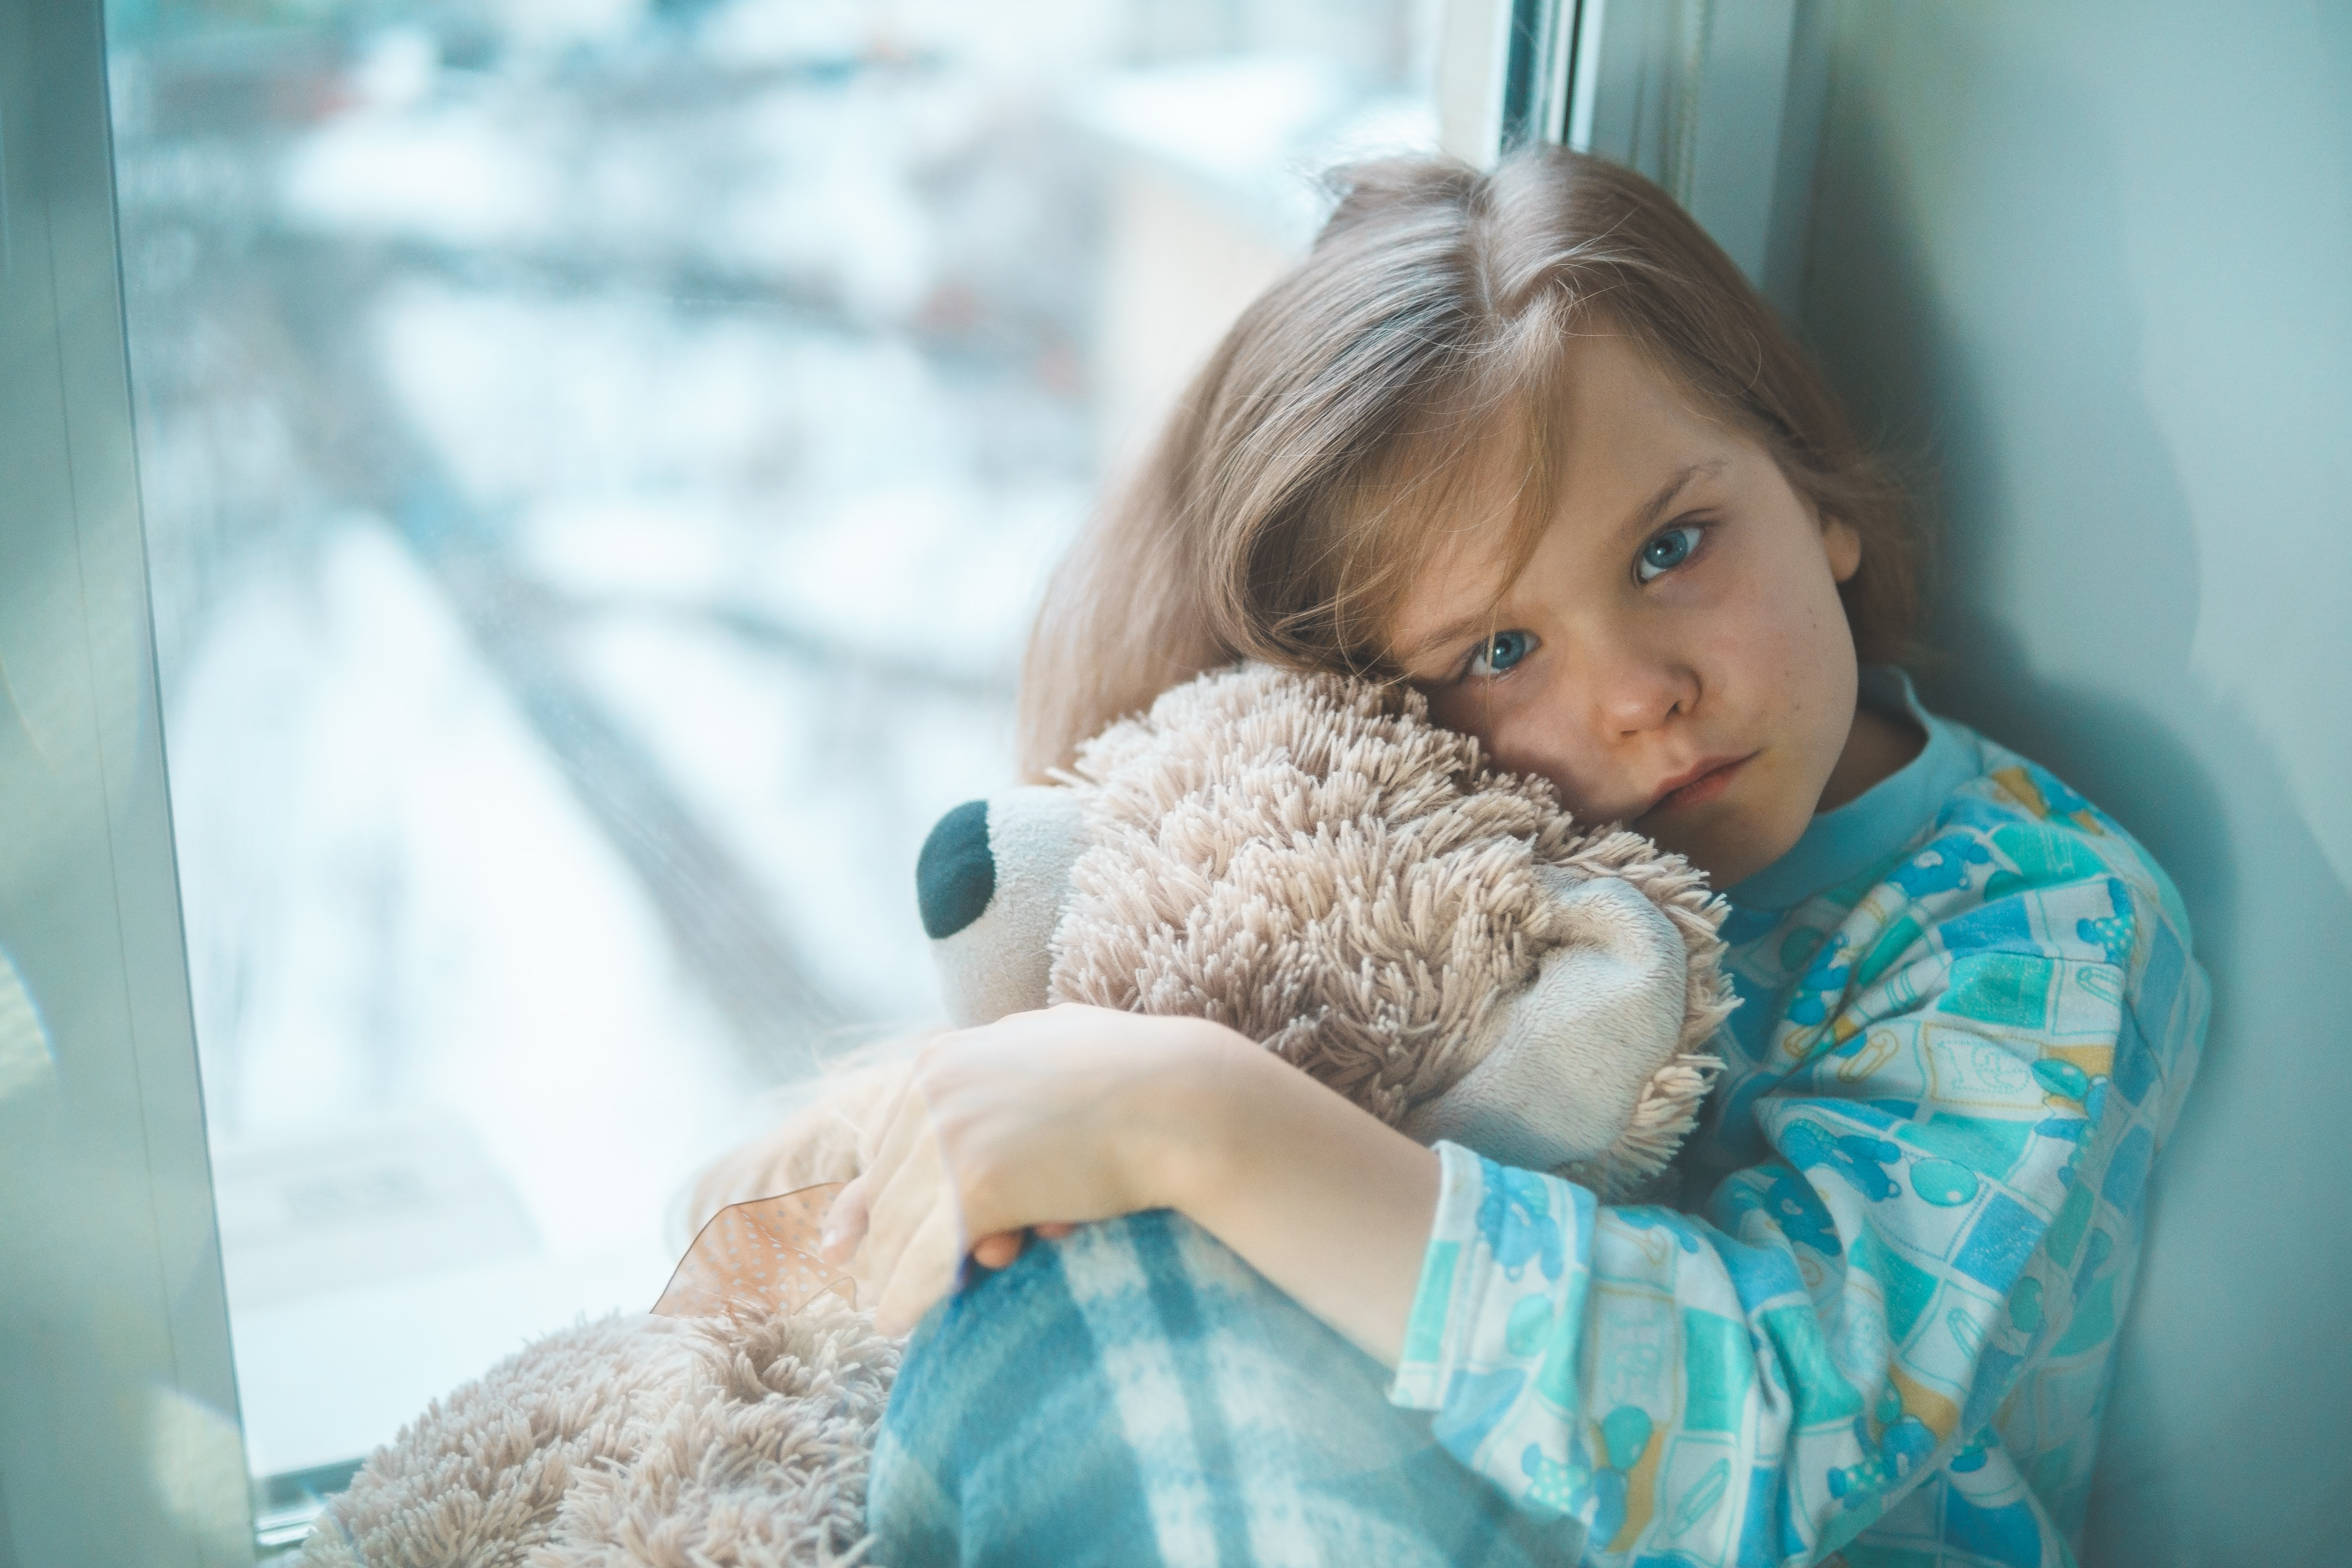 a sick child with a fever sitting at home